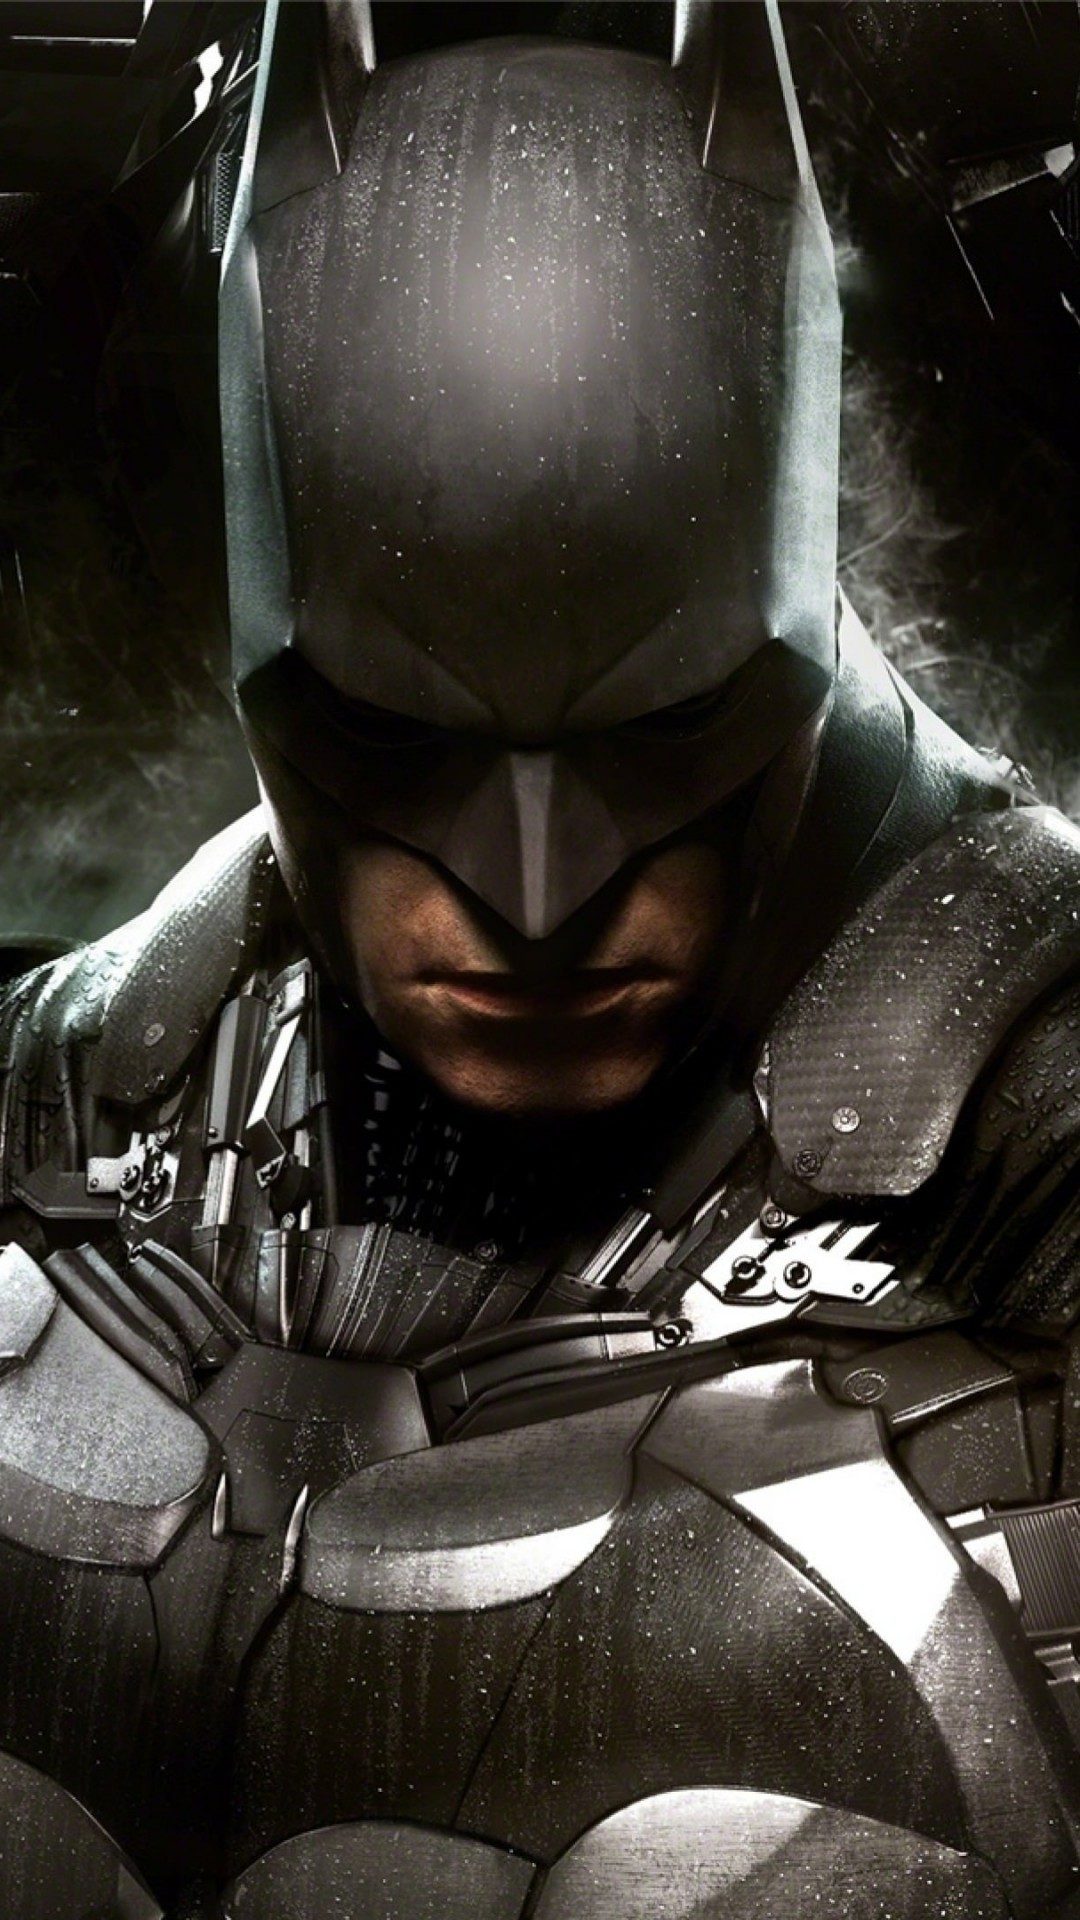 The Batman : Arkham Knight Wallpaper for Google Nexus 5